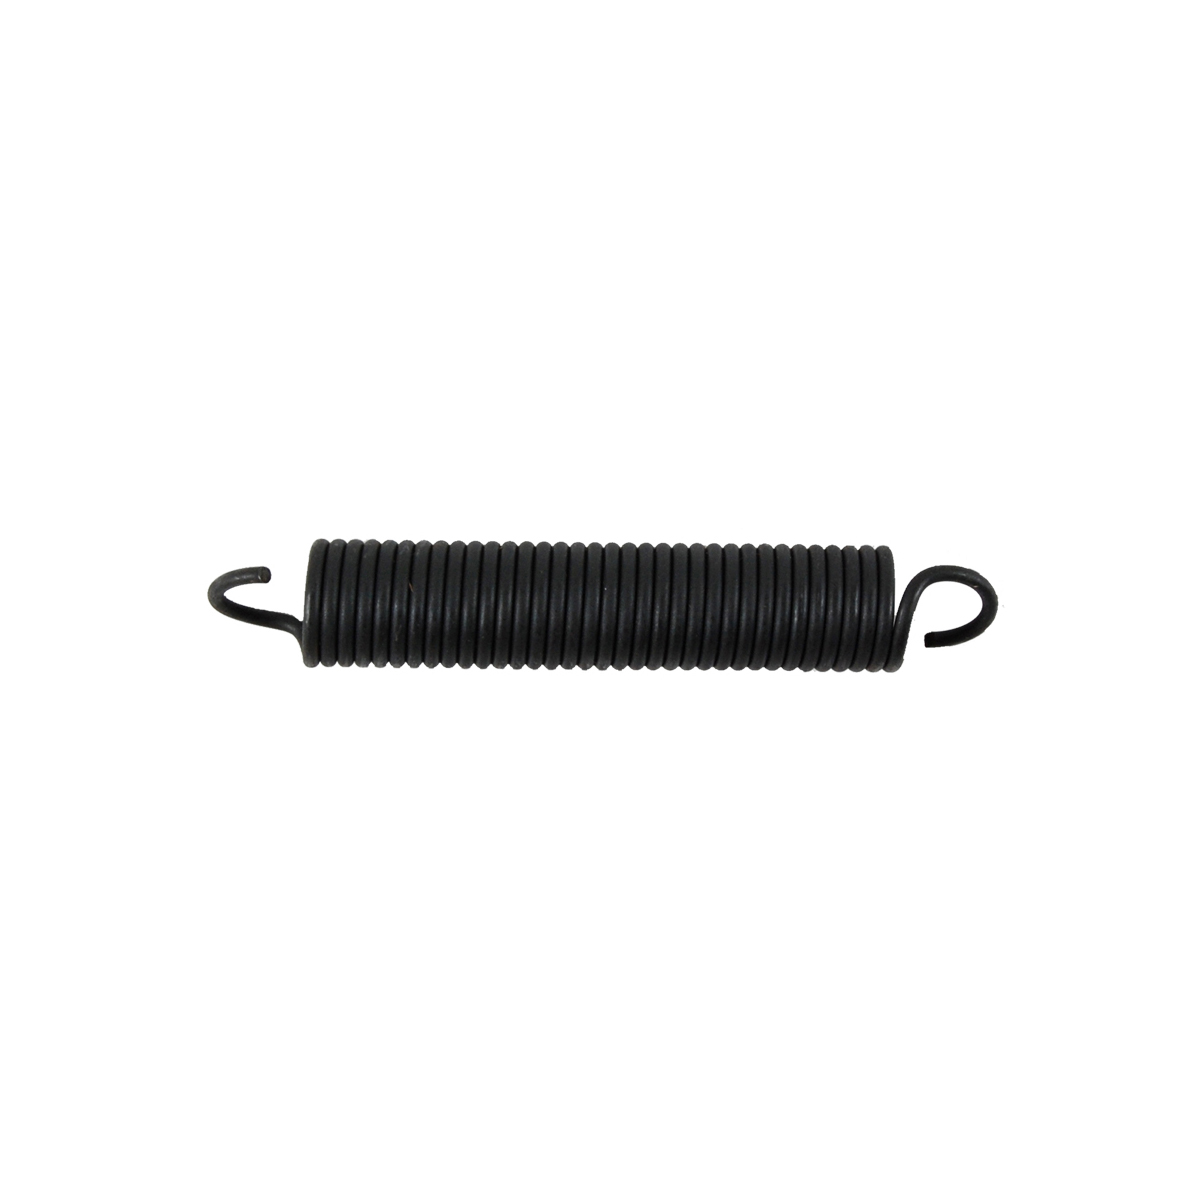 Extension Spring (.162 Dia x 1.25 OD) 732-0861